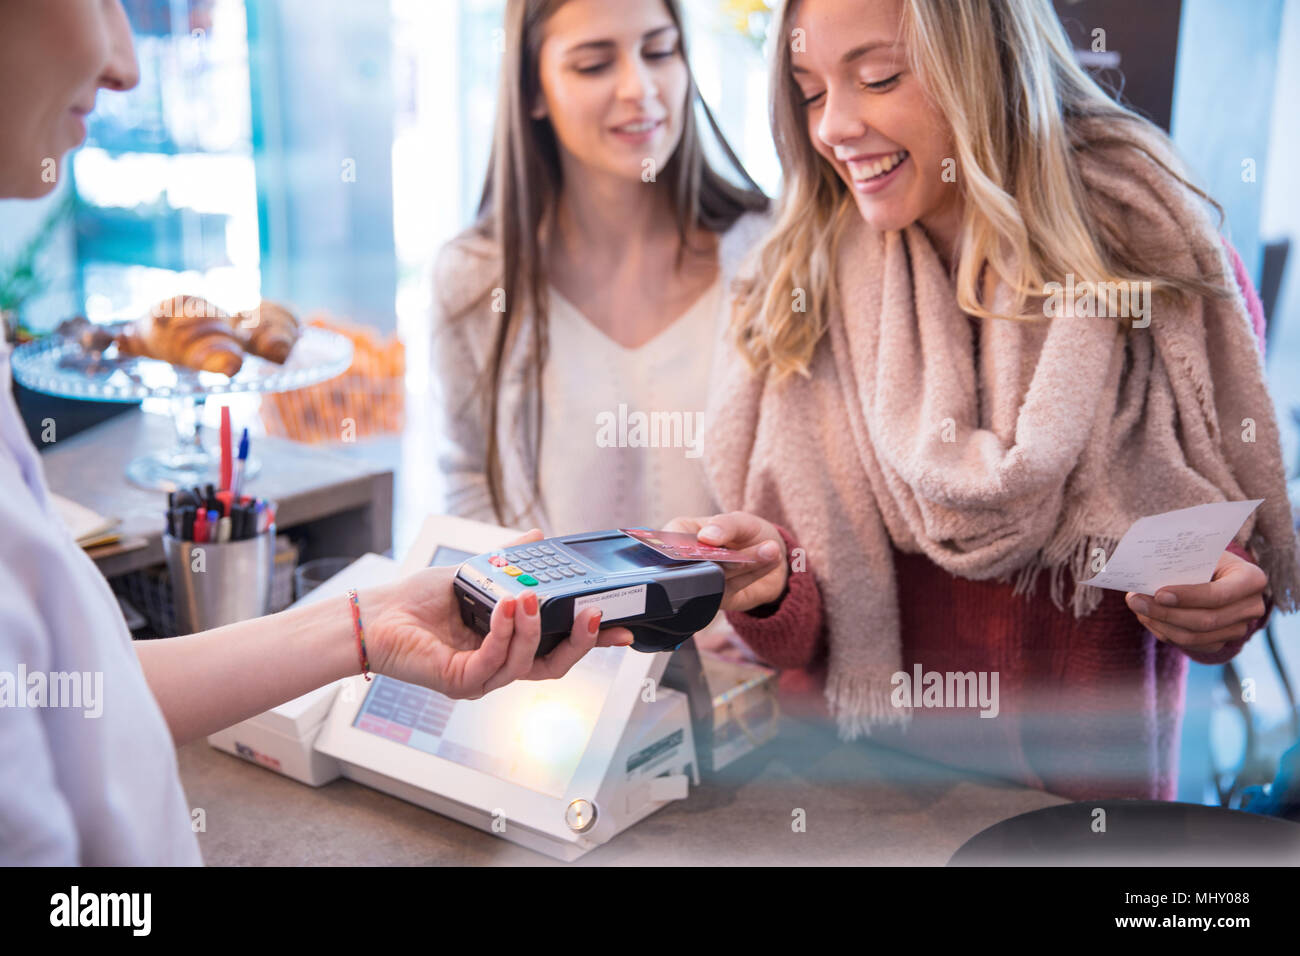 Female friends standing at counter in cafe, paying using credit card Stock Photo